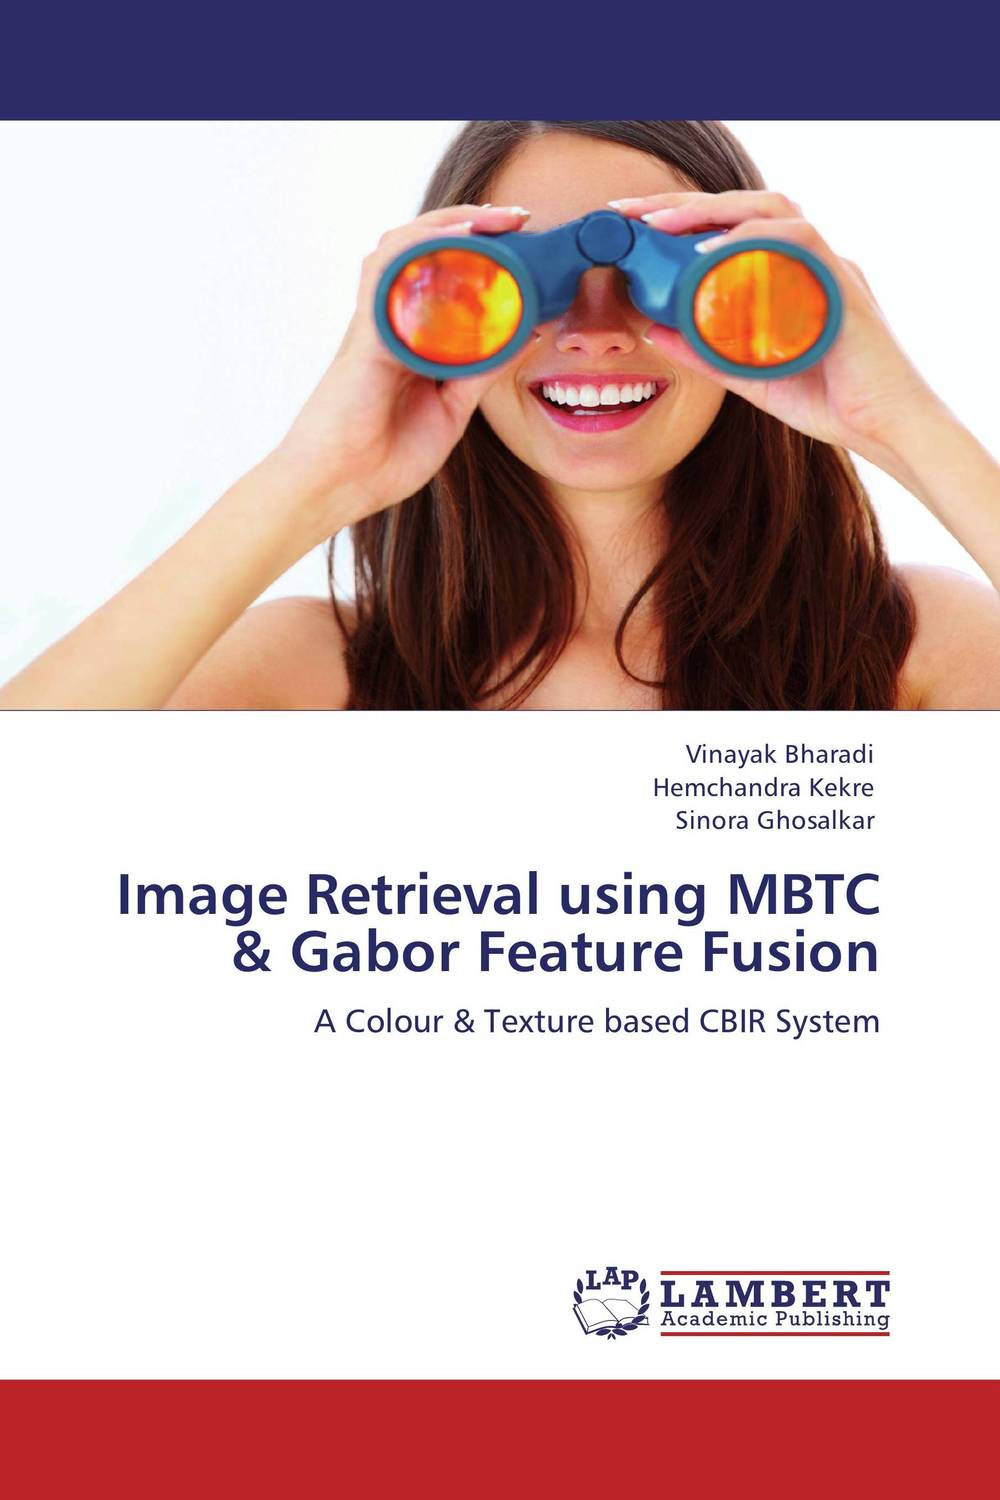 Image Retrieval using MBTC & Gabor Feature Fusion color image watermarking using matlab